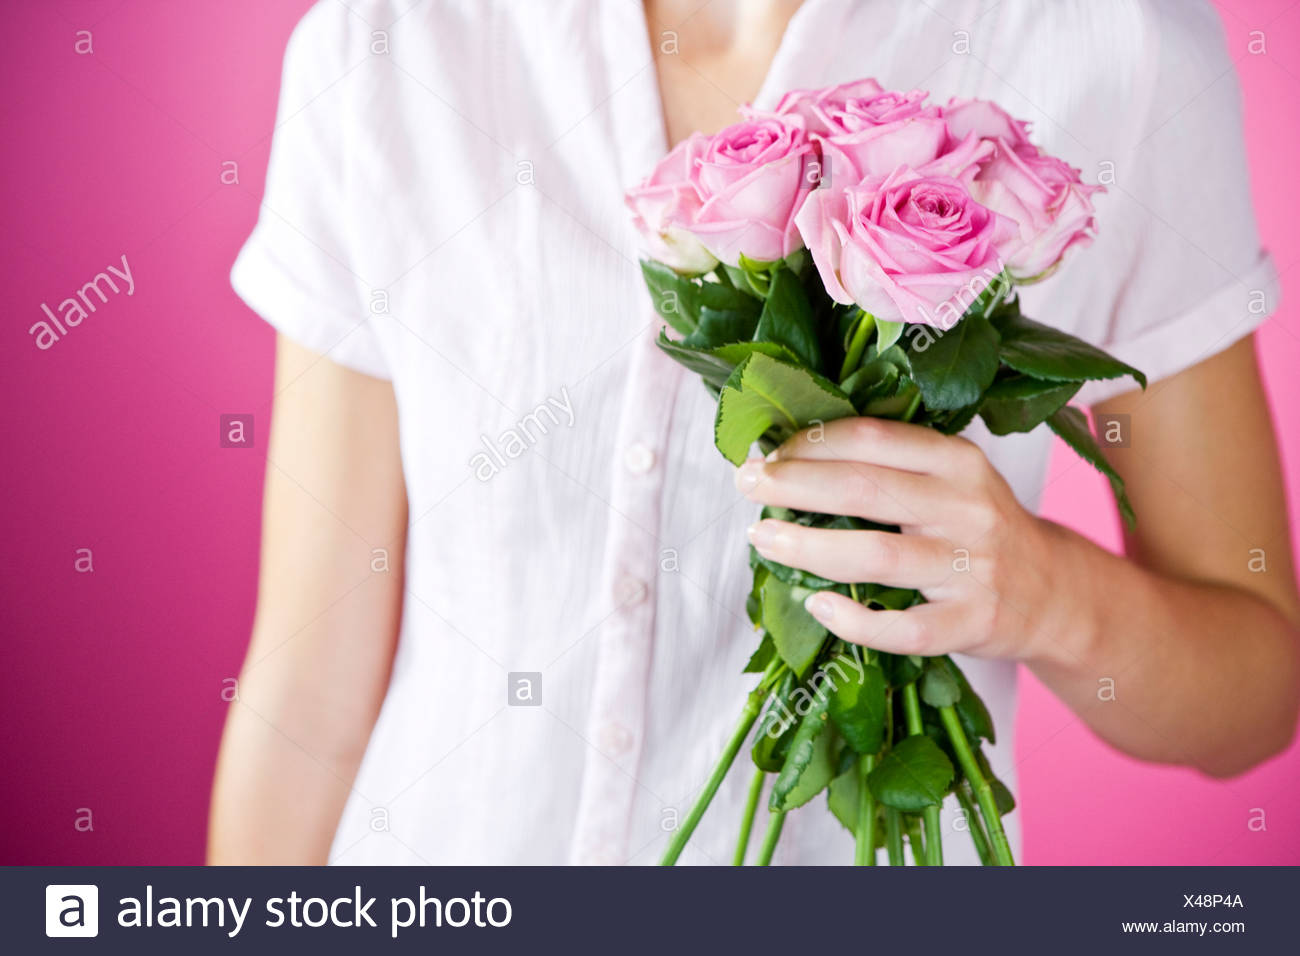 A Young Woman Holding A Bunch Of Pink Roses - Stock Image